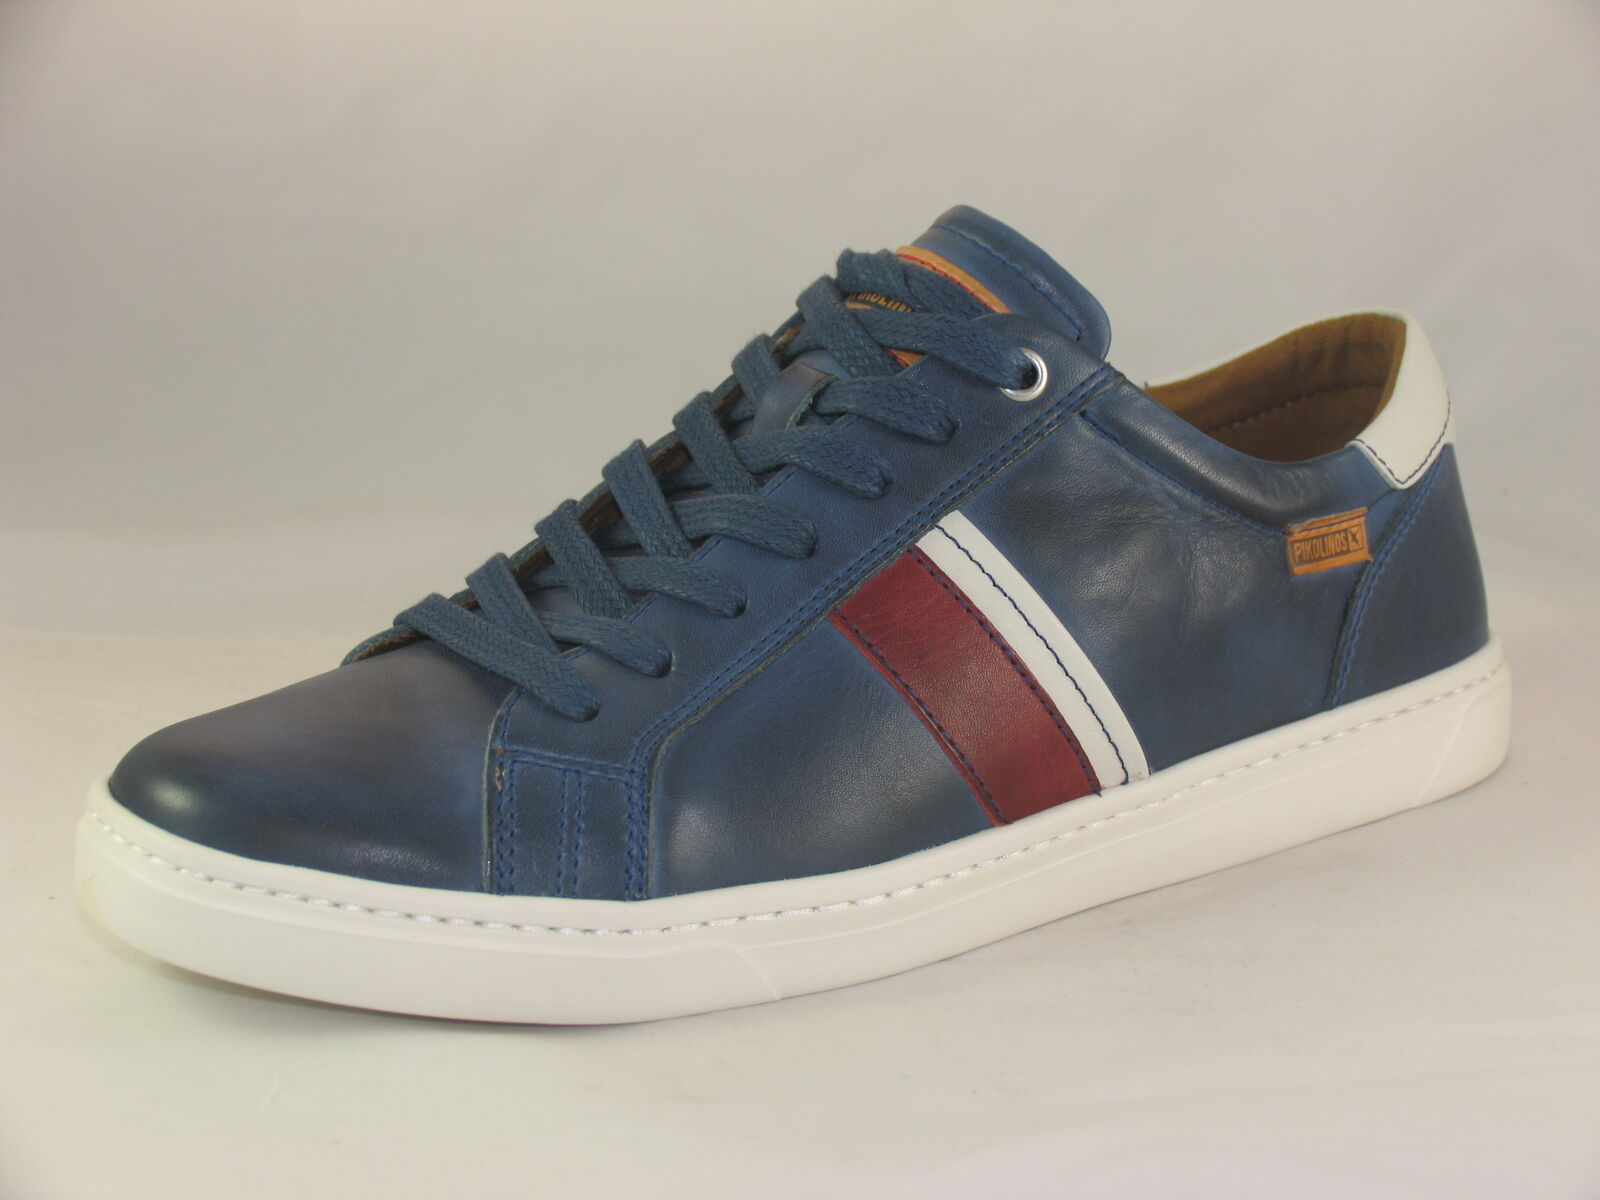 Mens Pikolinos M8K-4215 Casual Lace-up shoes